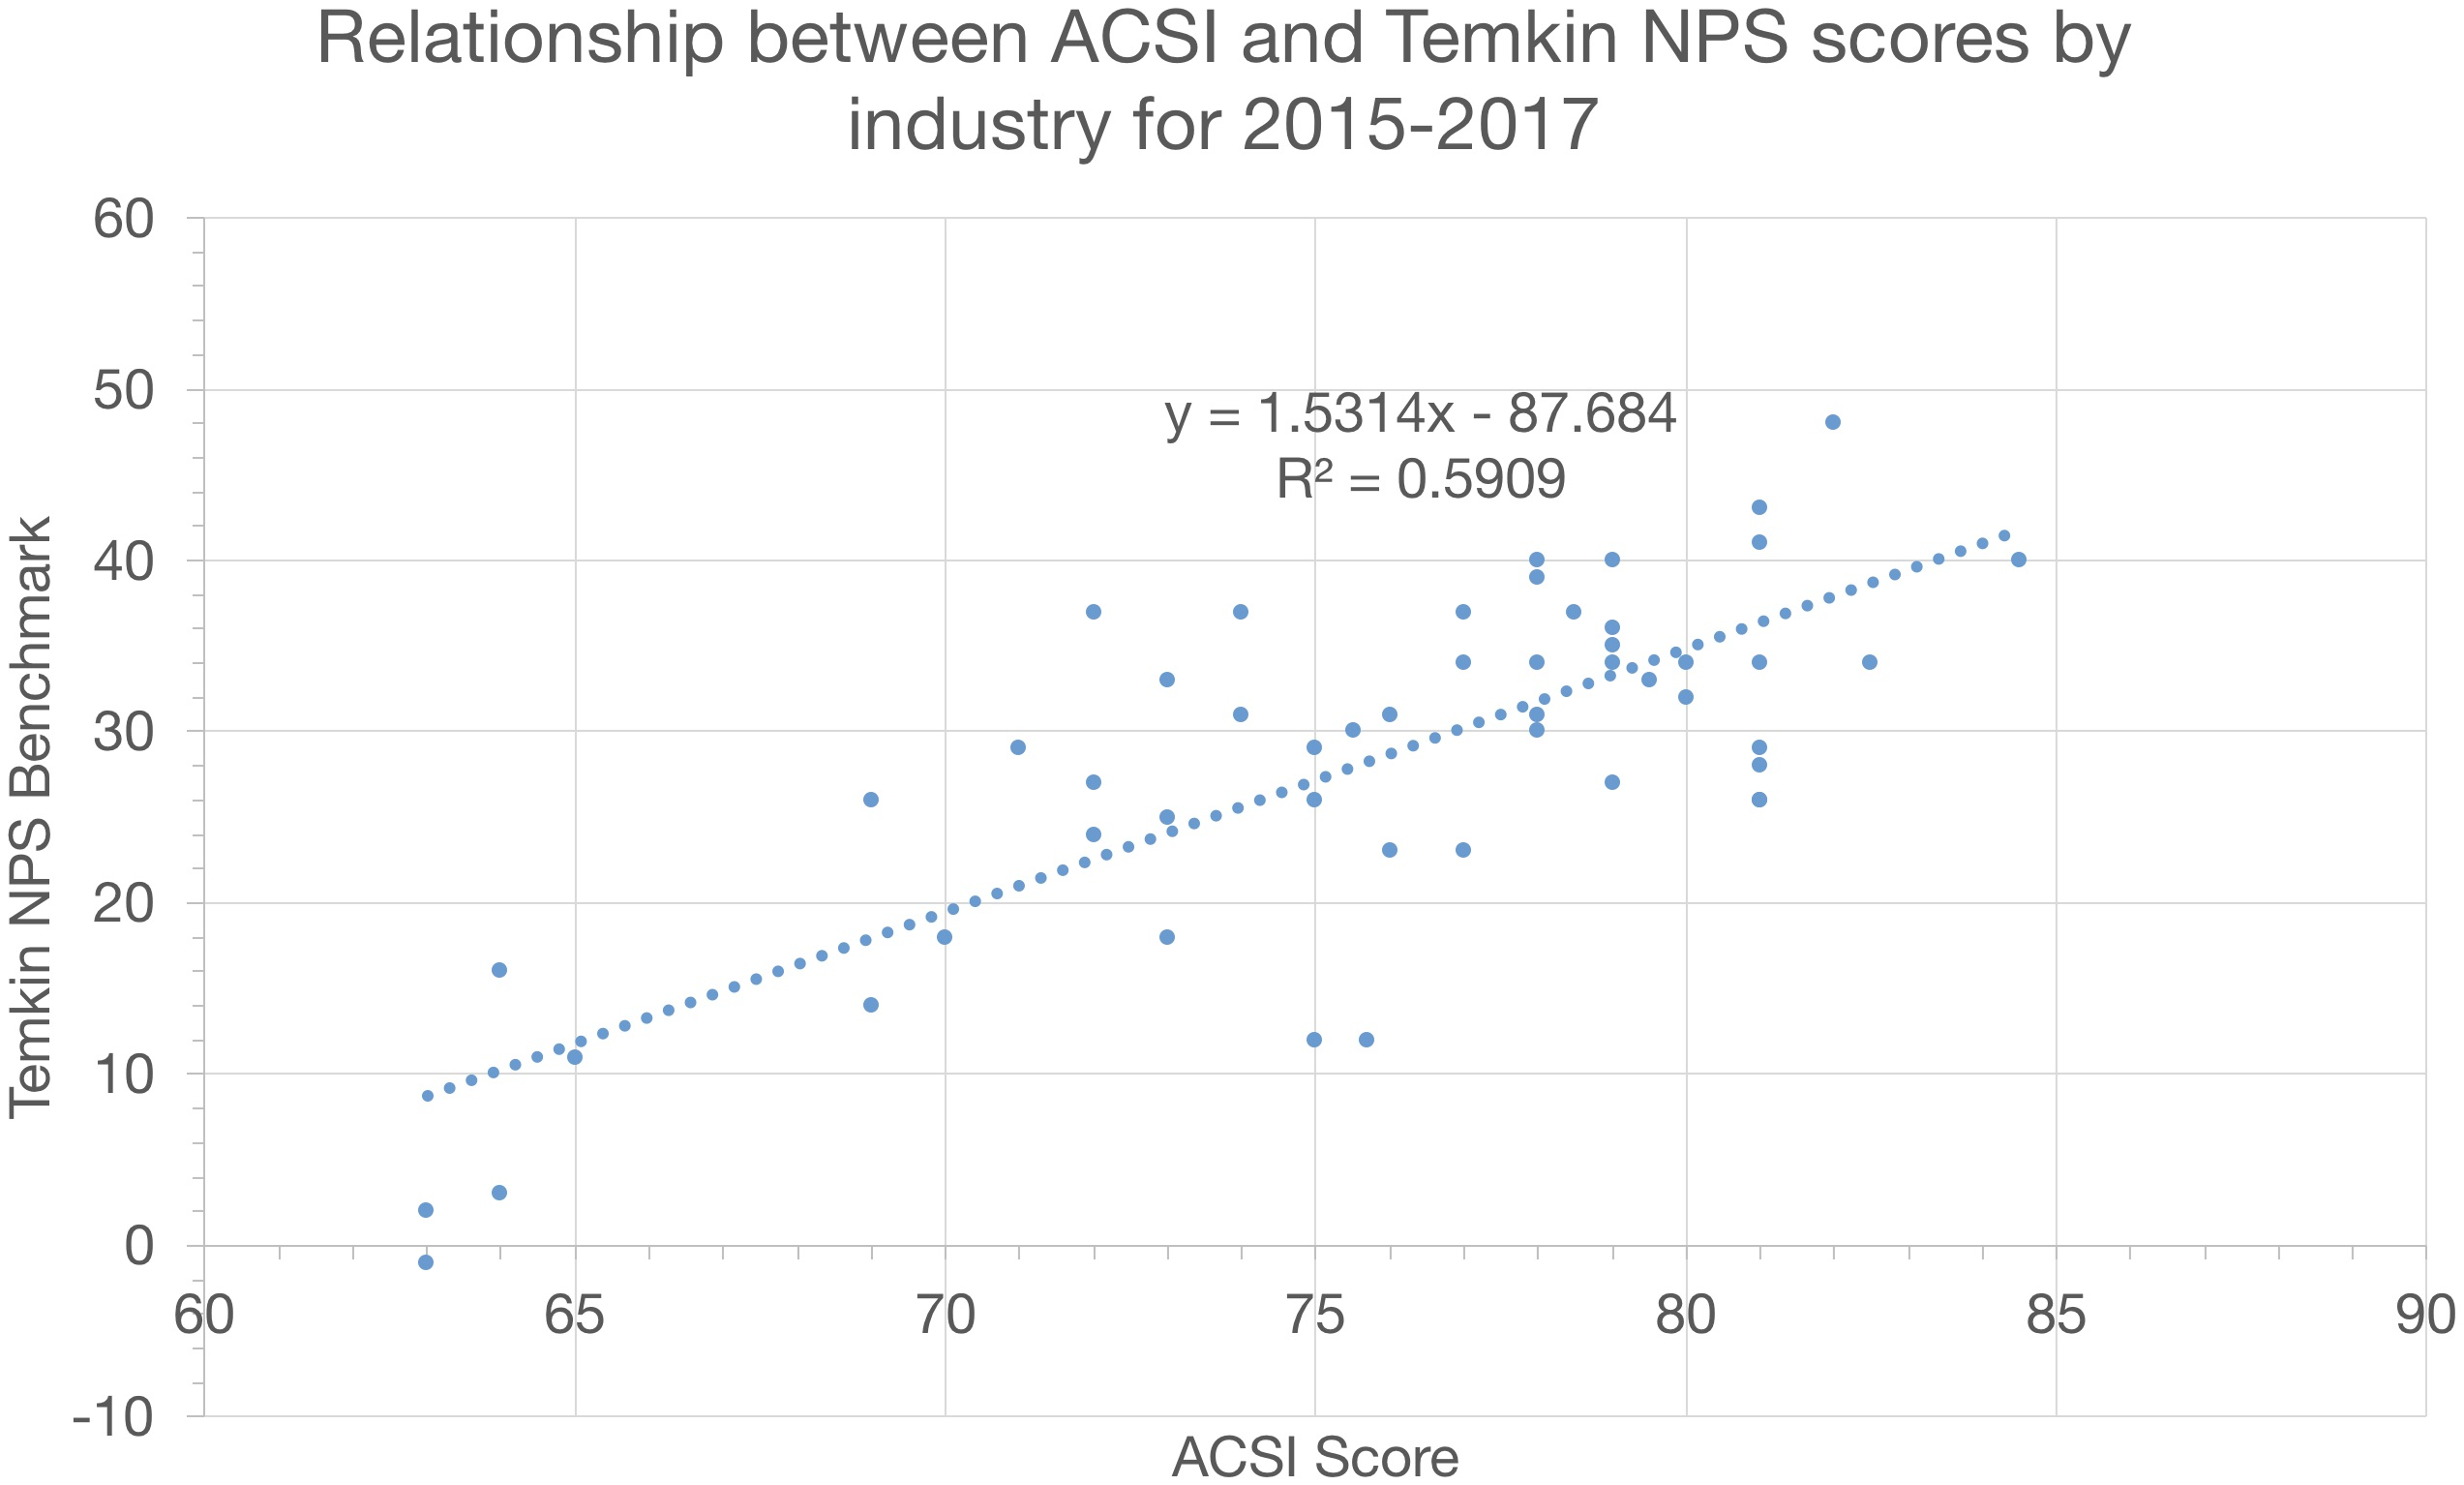 Temkin NPS vs ACSI 800